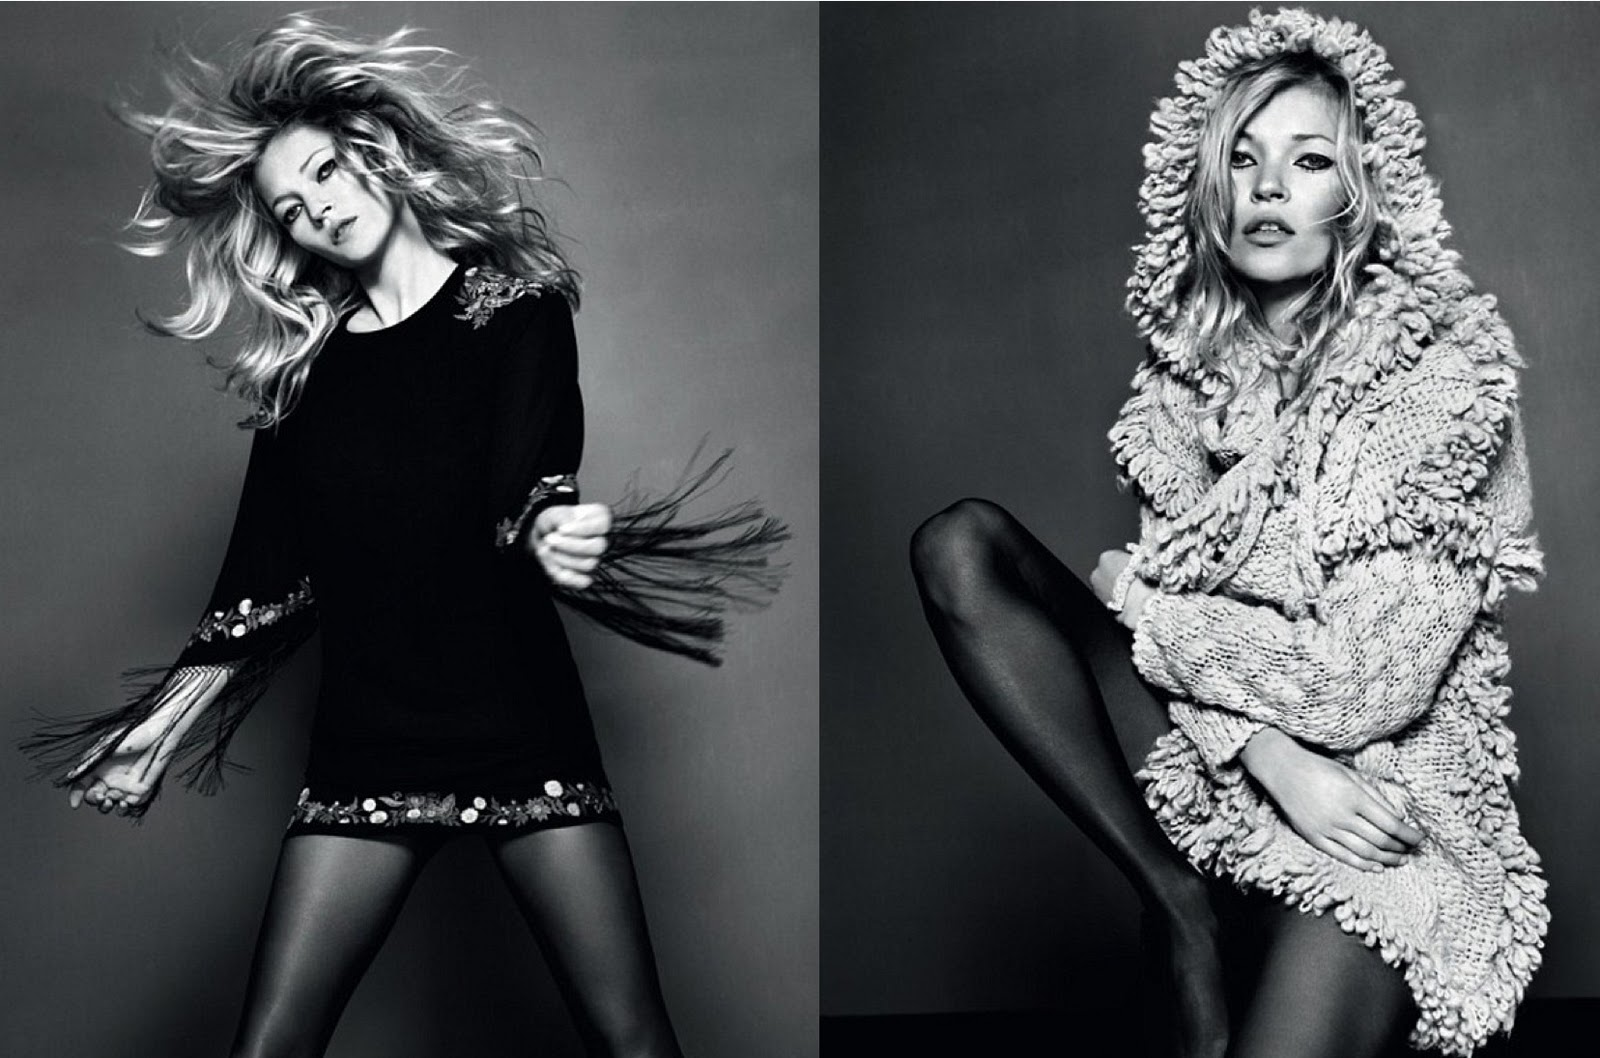 A new Kate Moss x Topshop collection in April 2014